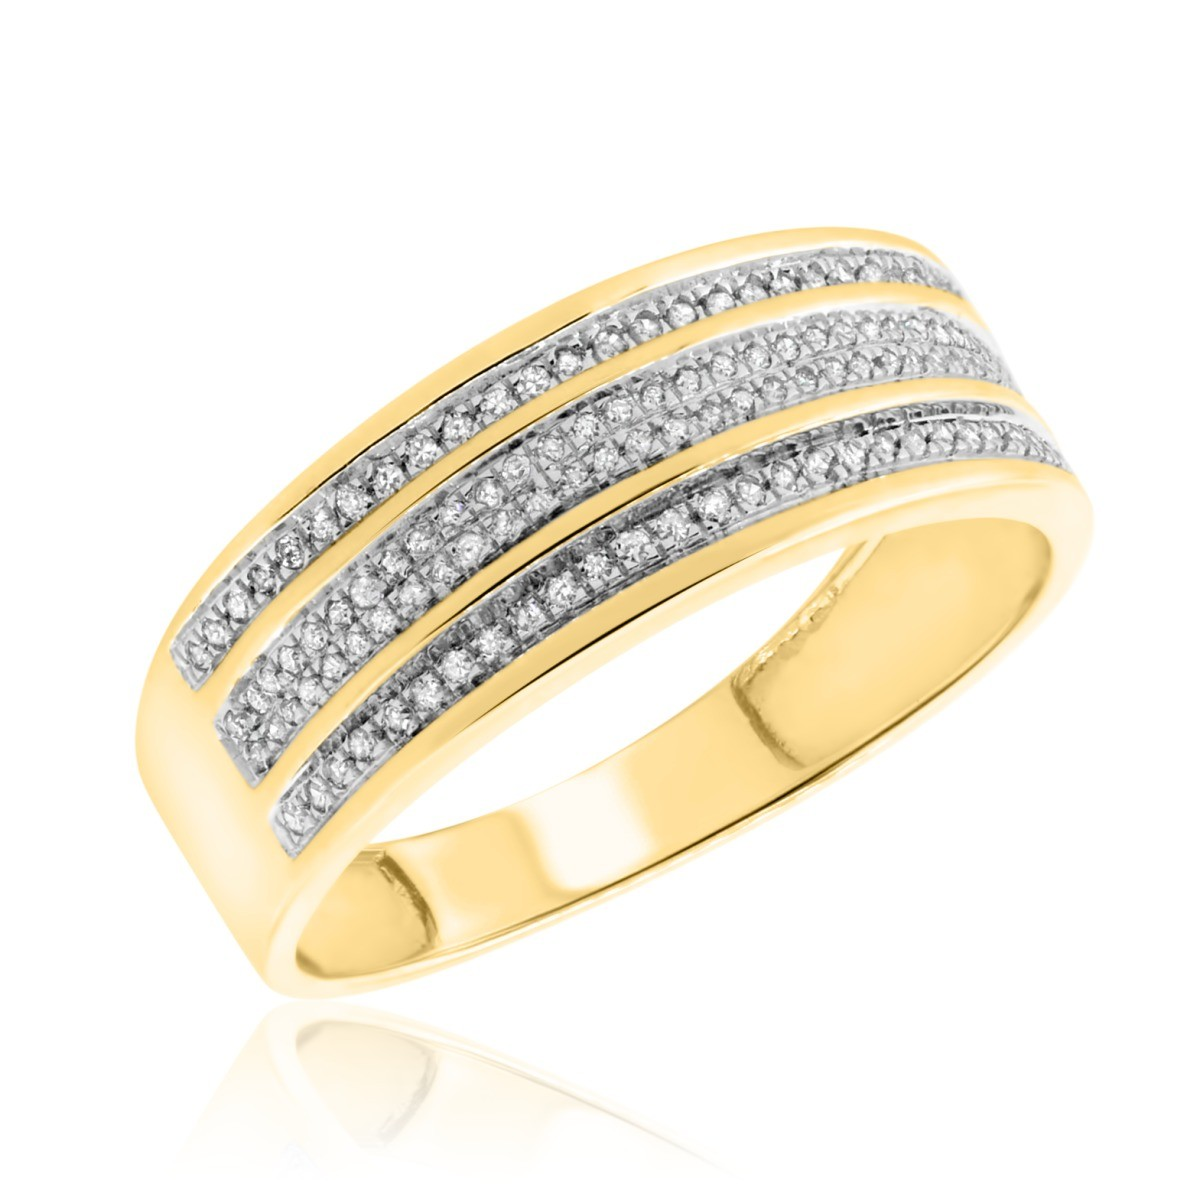 1/5 Carat T.W. Diamond Mens Wedding Band  14K Yellow Gold